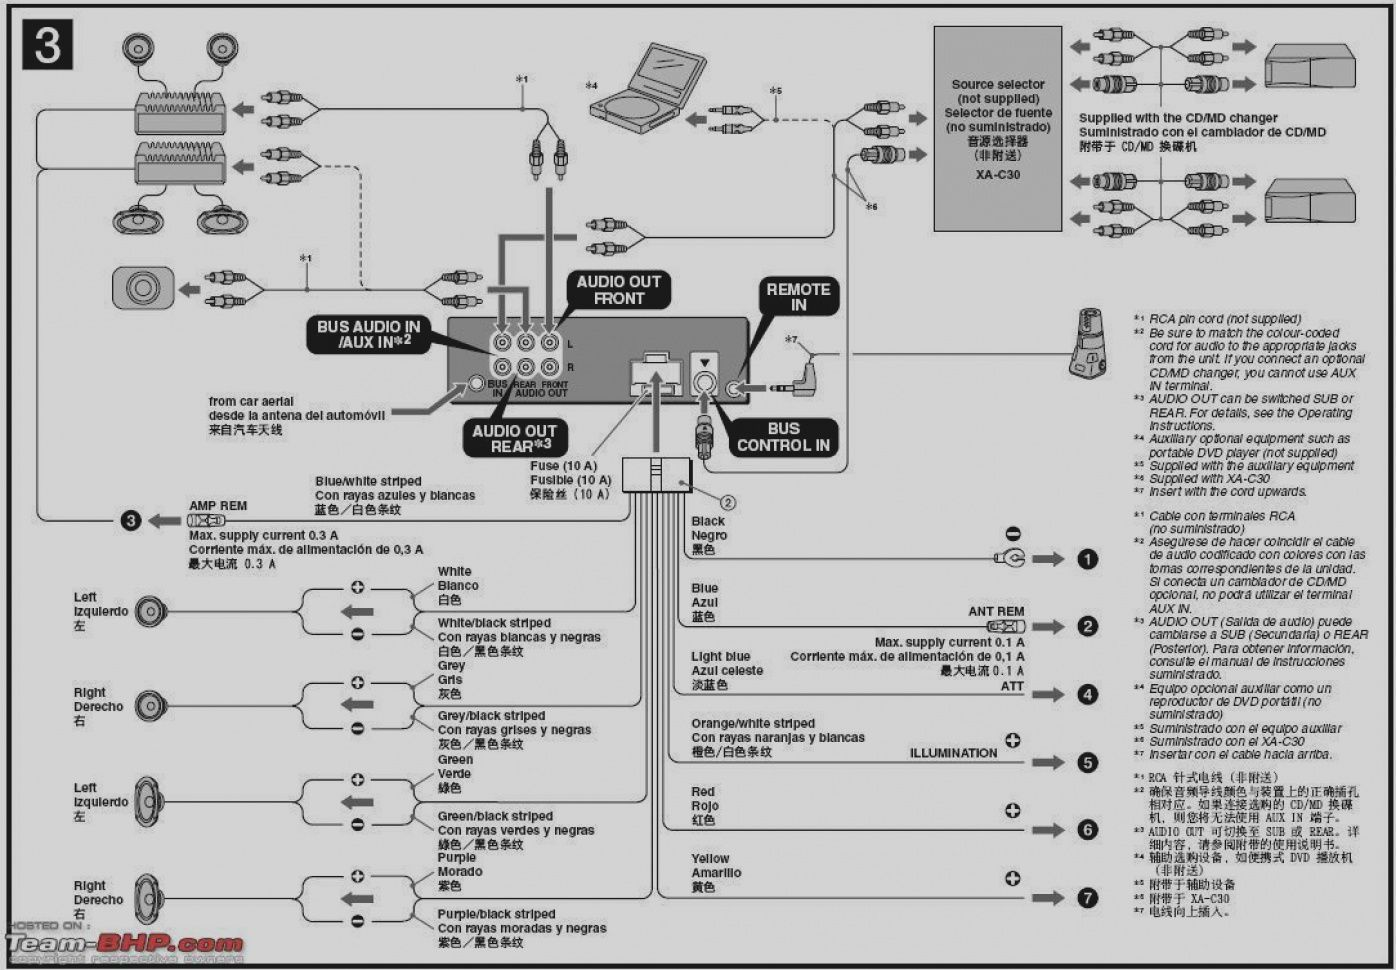 Sony Cdx Gt57up Wiring Diagram